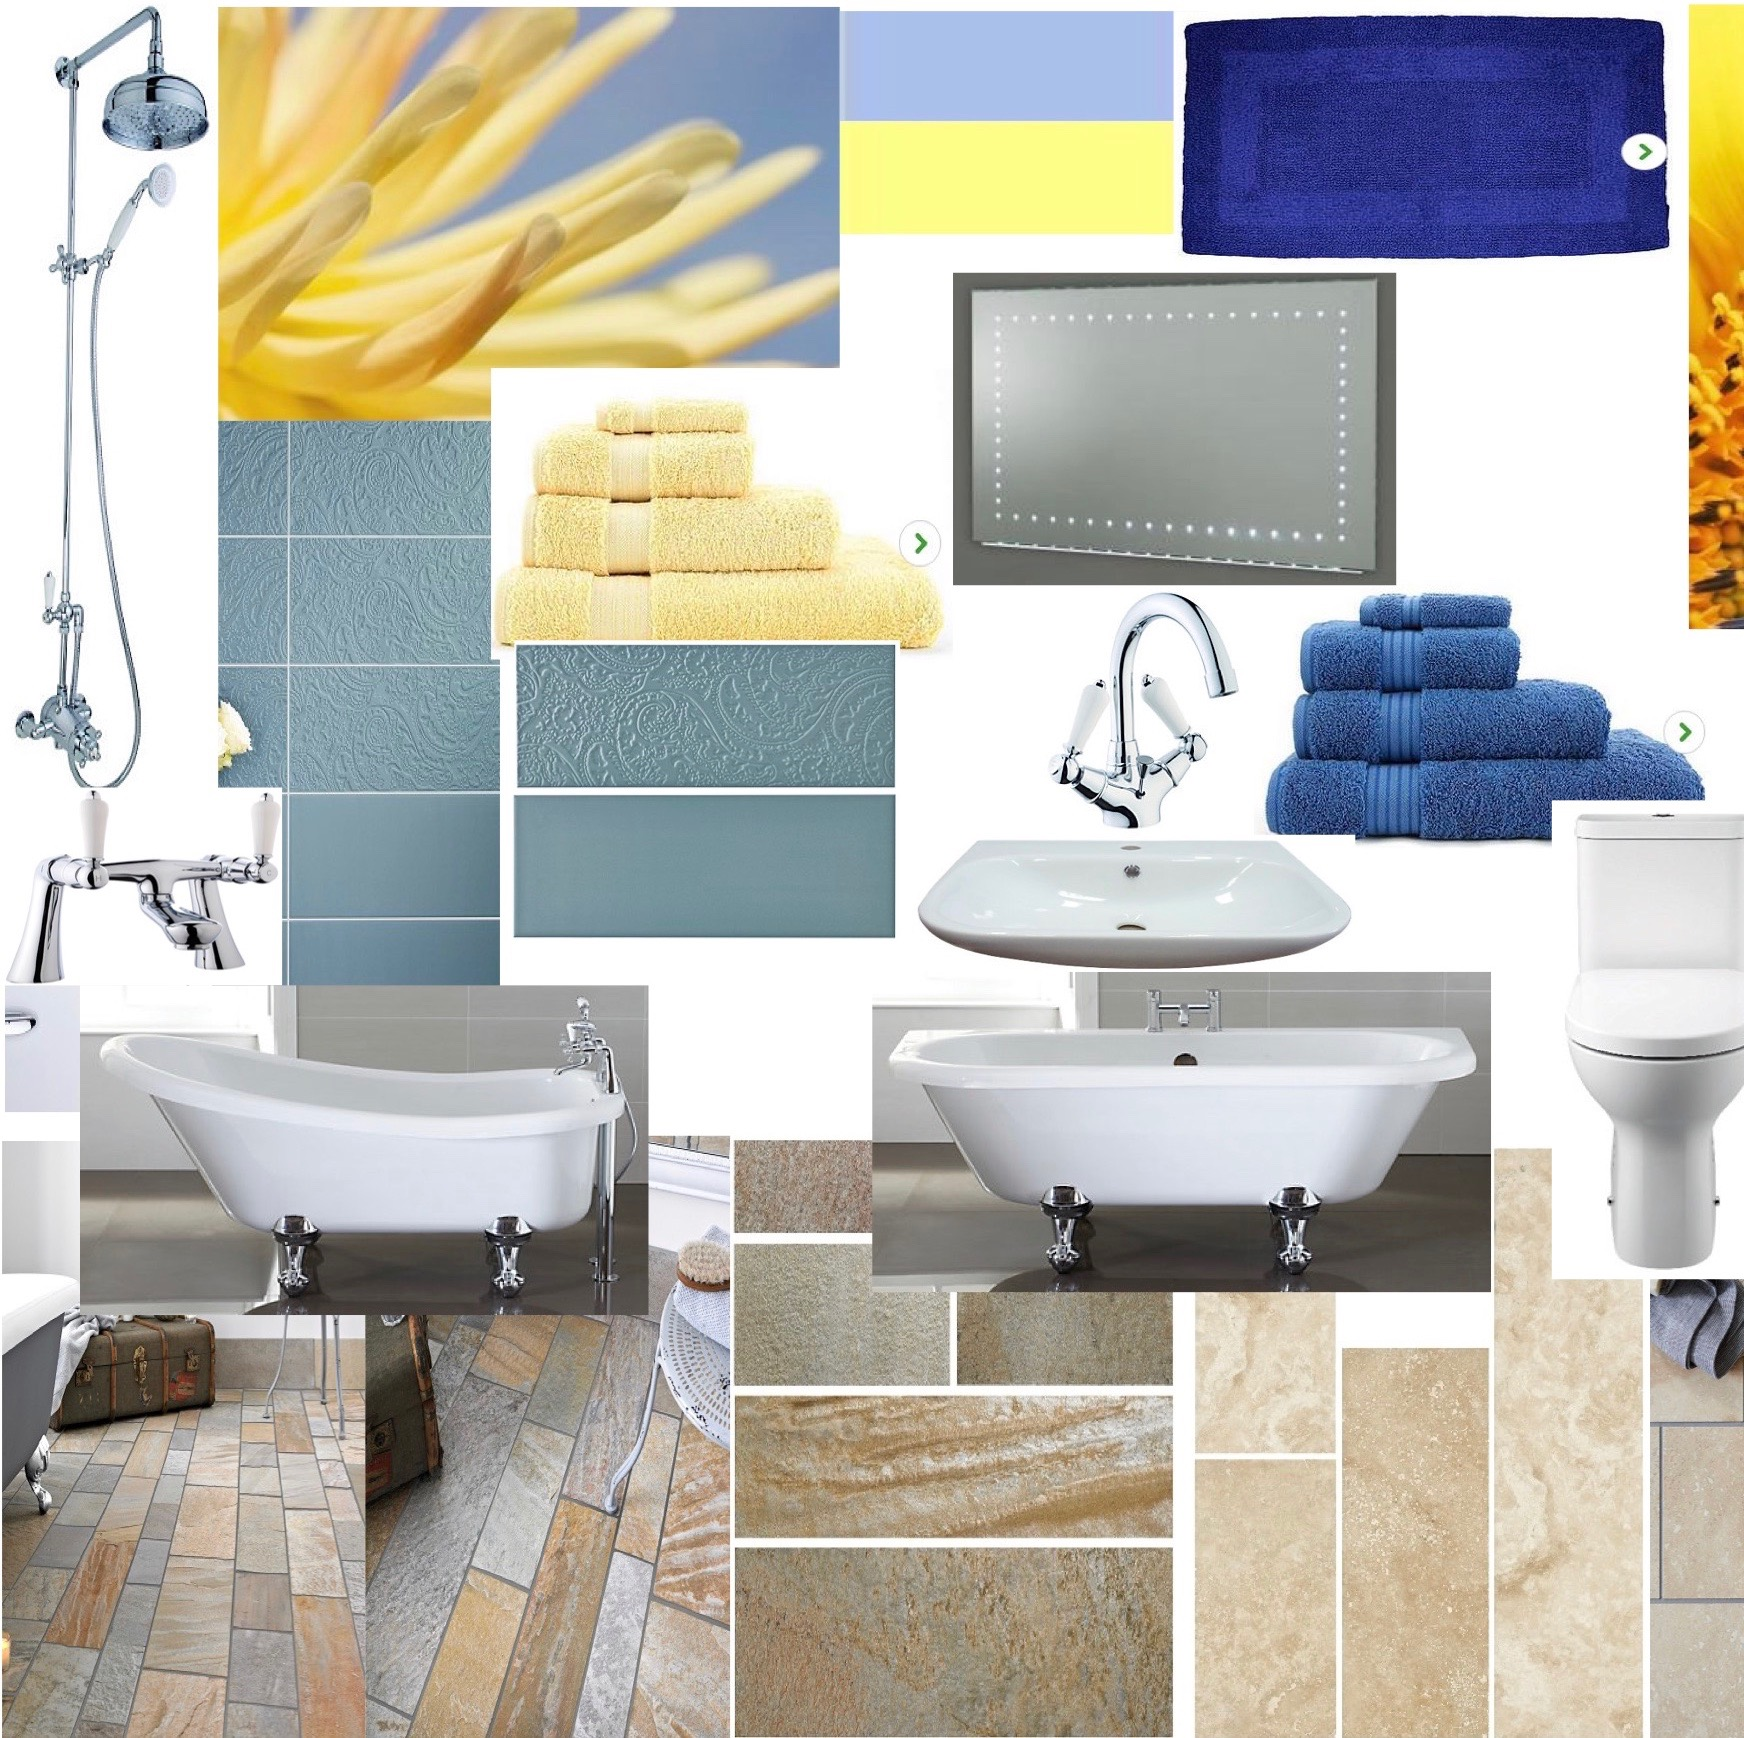 Bath mood board